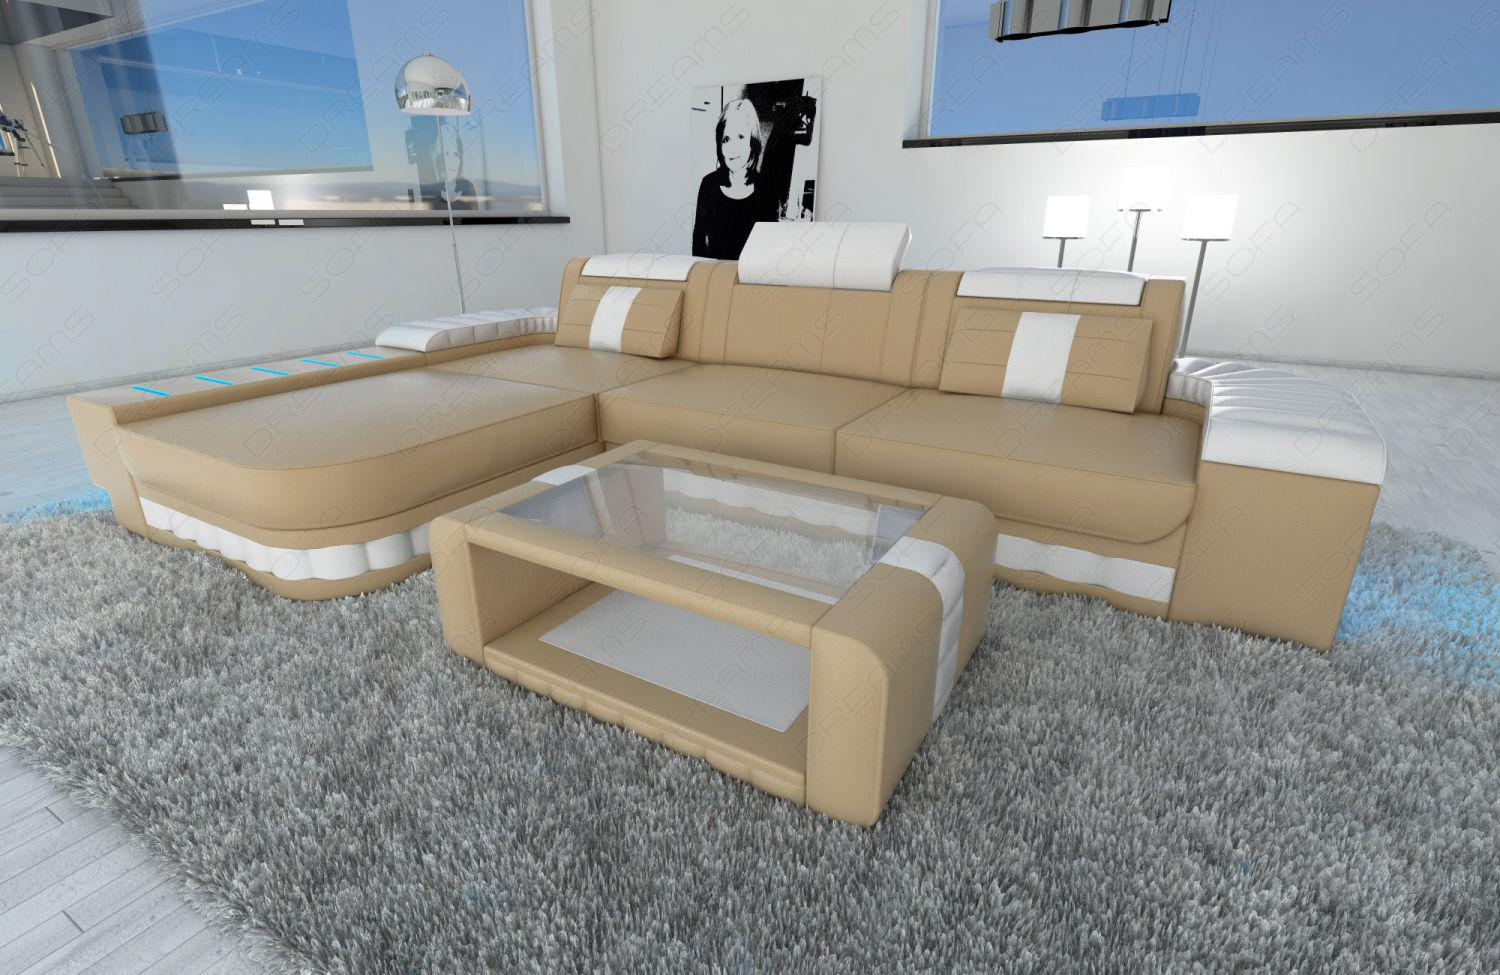 modernes ecksofa bellagio l form mit led beleuchtung sandbeige weiss kaufen bei pmr. Black Bedroom Furniture Sets. Home Design Ideas